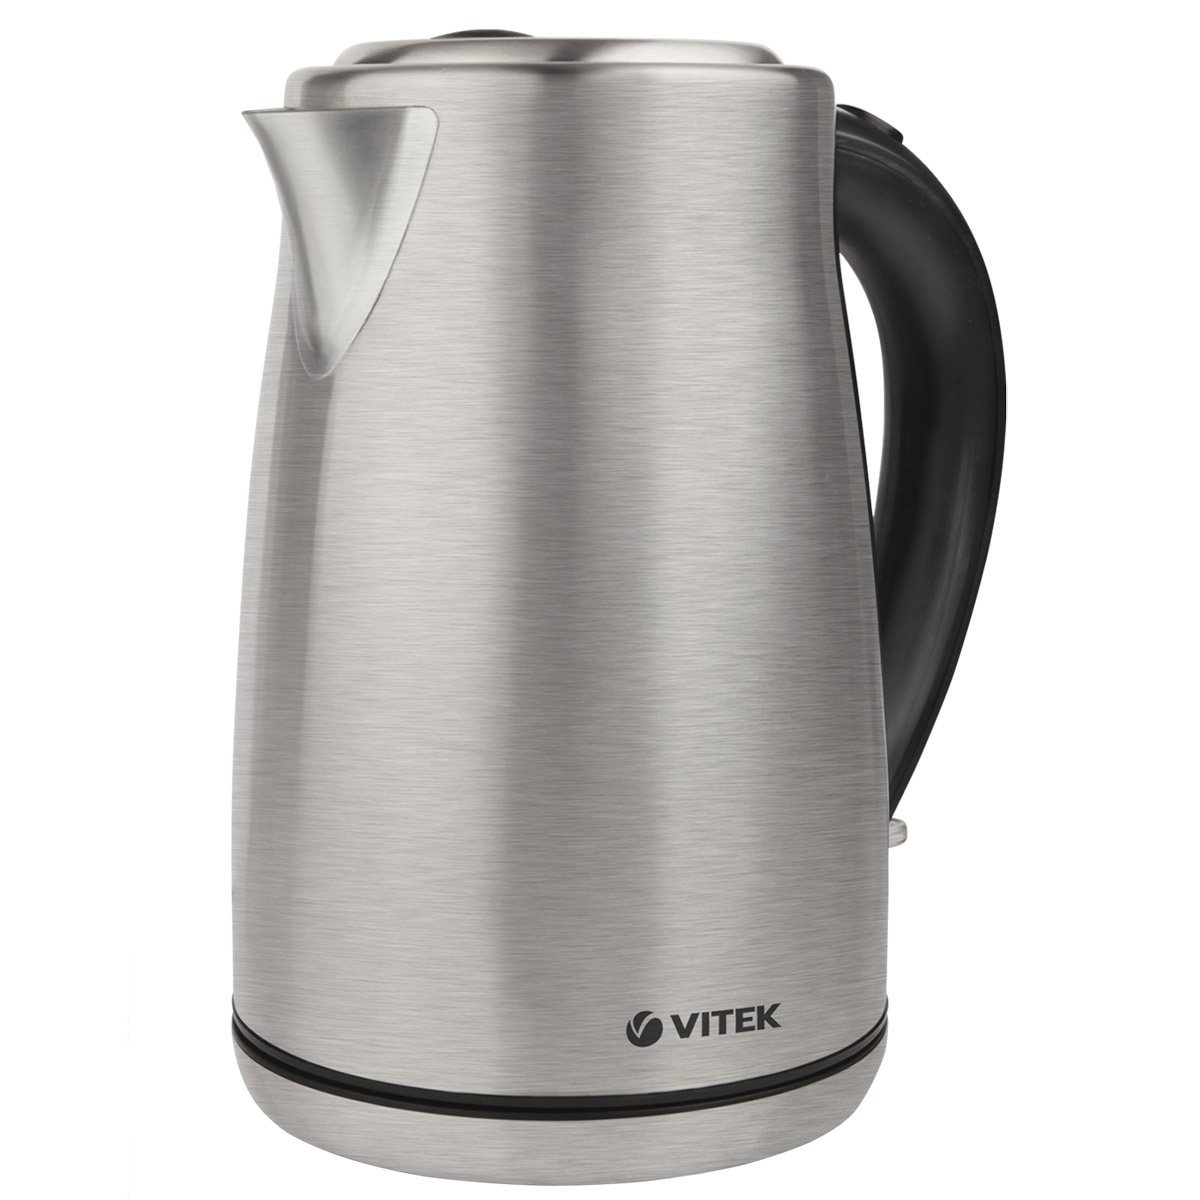 Electric kettle Vitek VT-7020 (ST) (Power 2000 W, volume 1.7 liters, stainless steel body, 360 ° rotation, auto power off) electric water kettle haier hek 182 auto power off protection wired handheld instant heating electric kettle